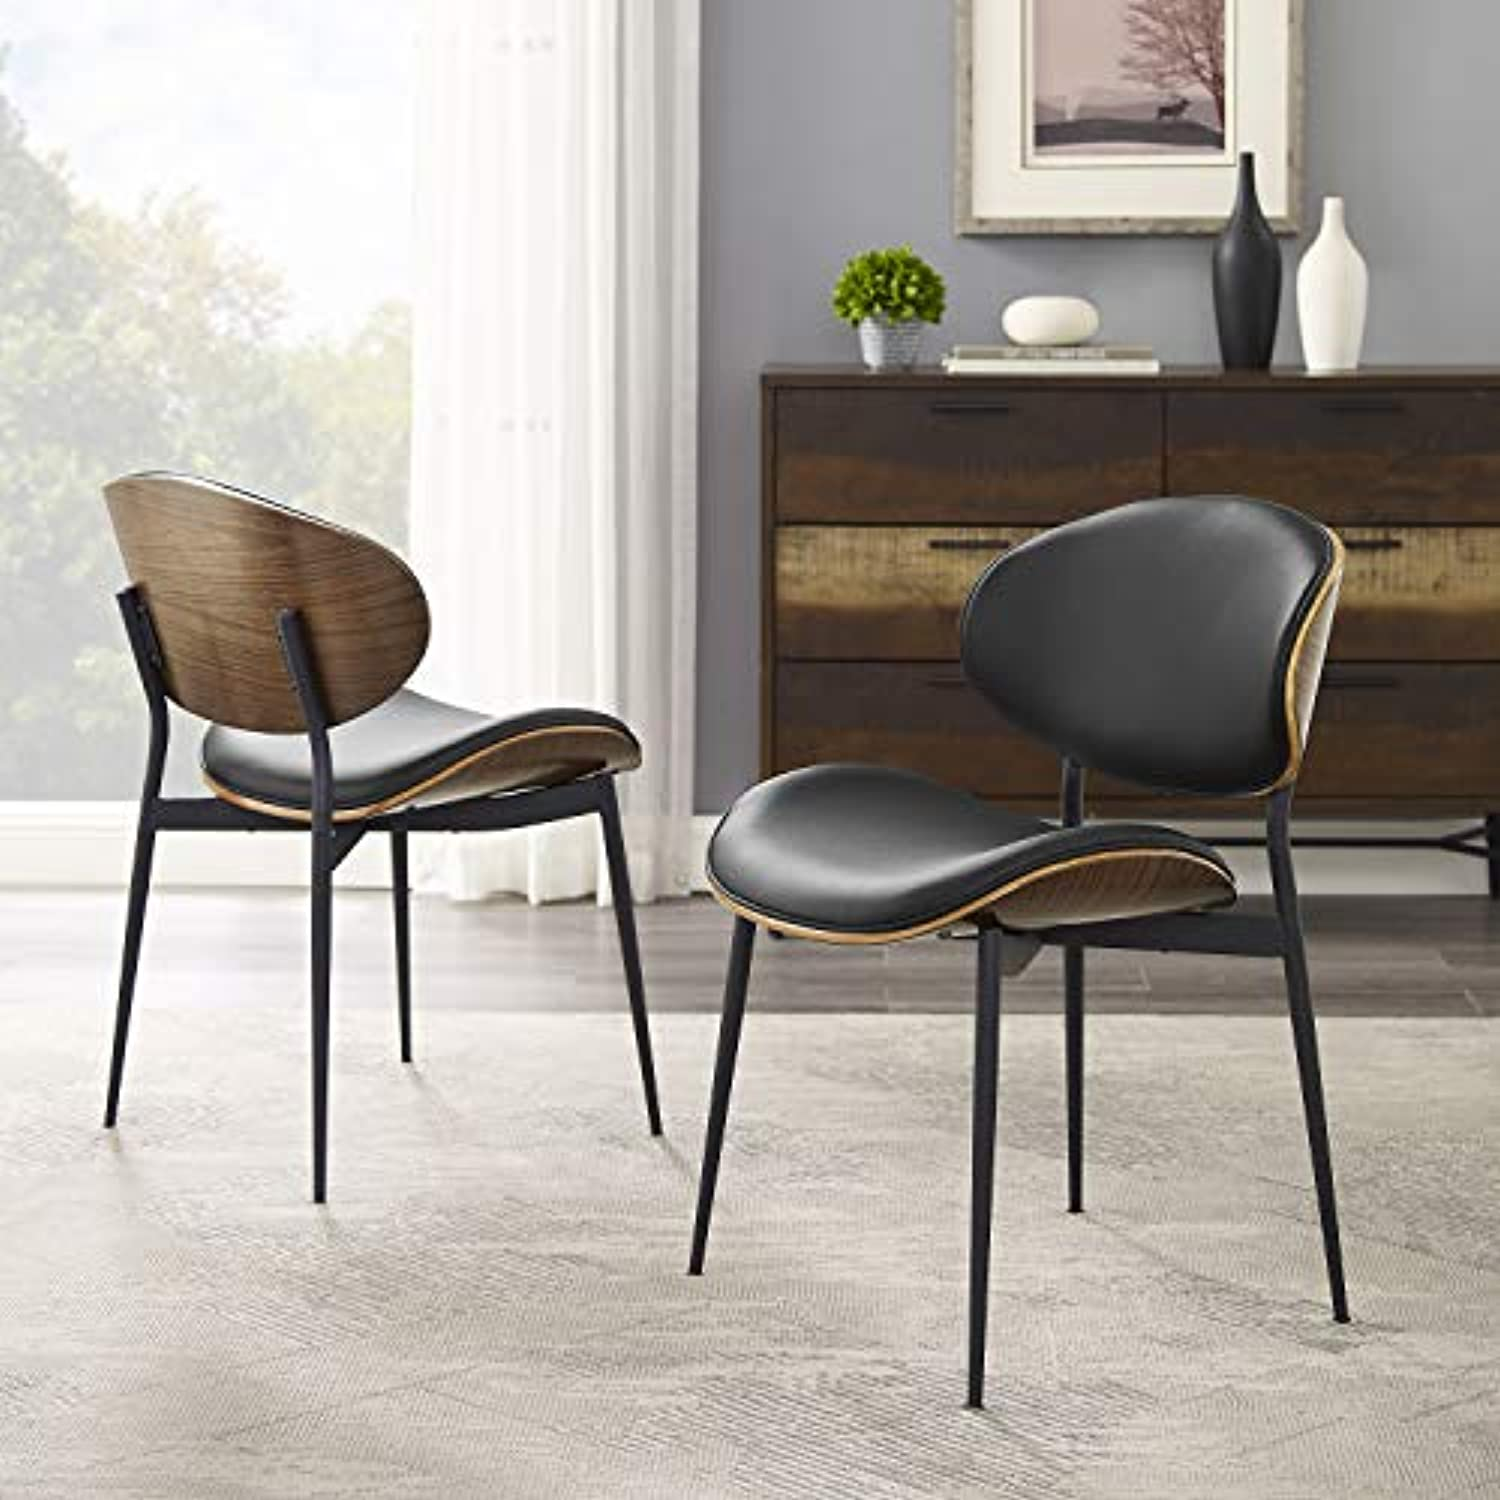 Art Leon Mid Century Modern Retro Black Faux Leather Kitchen Dining Chair, Armless Accent Desk Chair No Wheels, Set of 2